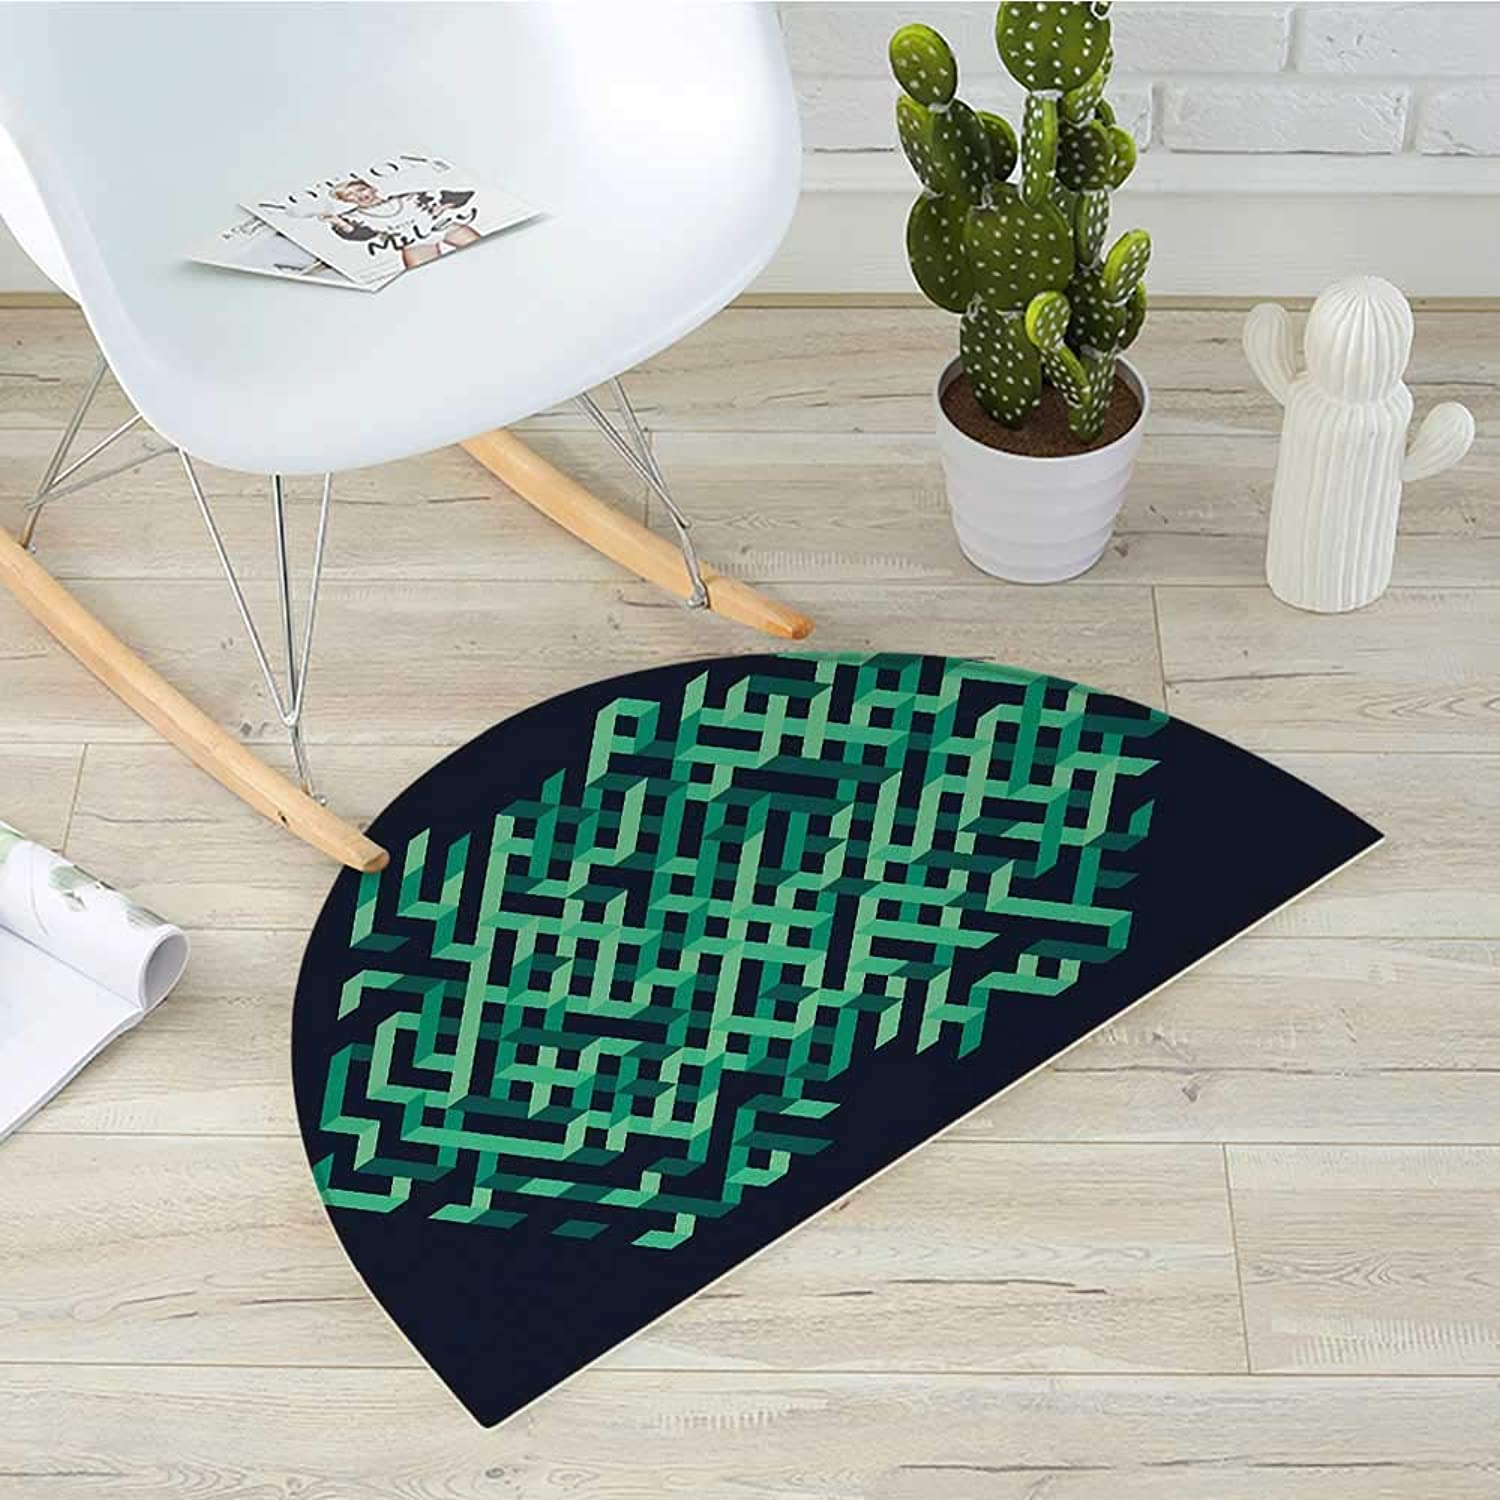 Modern Semicircle Doormat Geometric with Ombre Elements colord Lines Maze Like Circle Round Seem Image Halfmoon doormats H 31.5  xD 47.2  Green and bluee